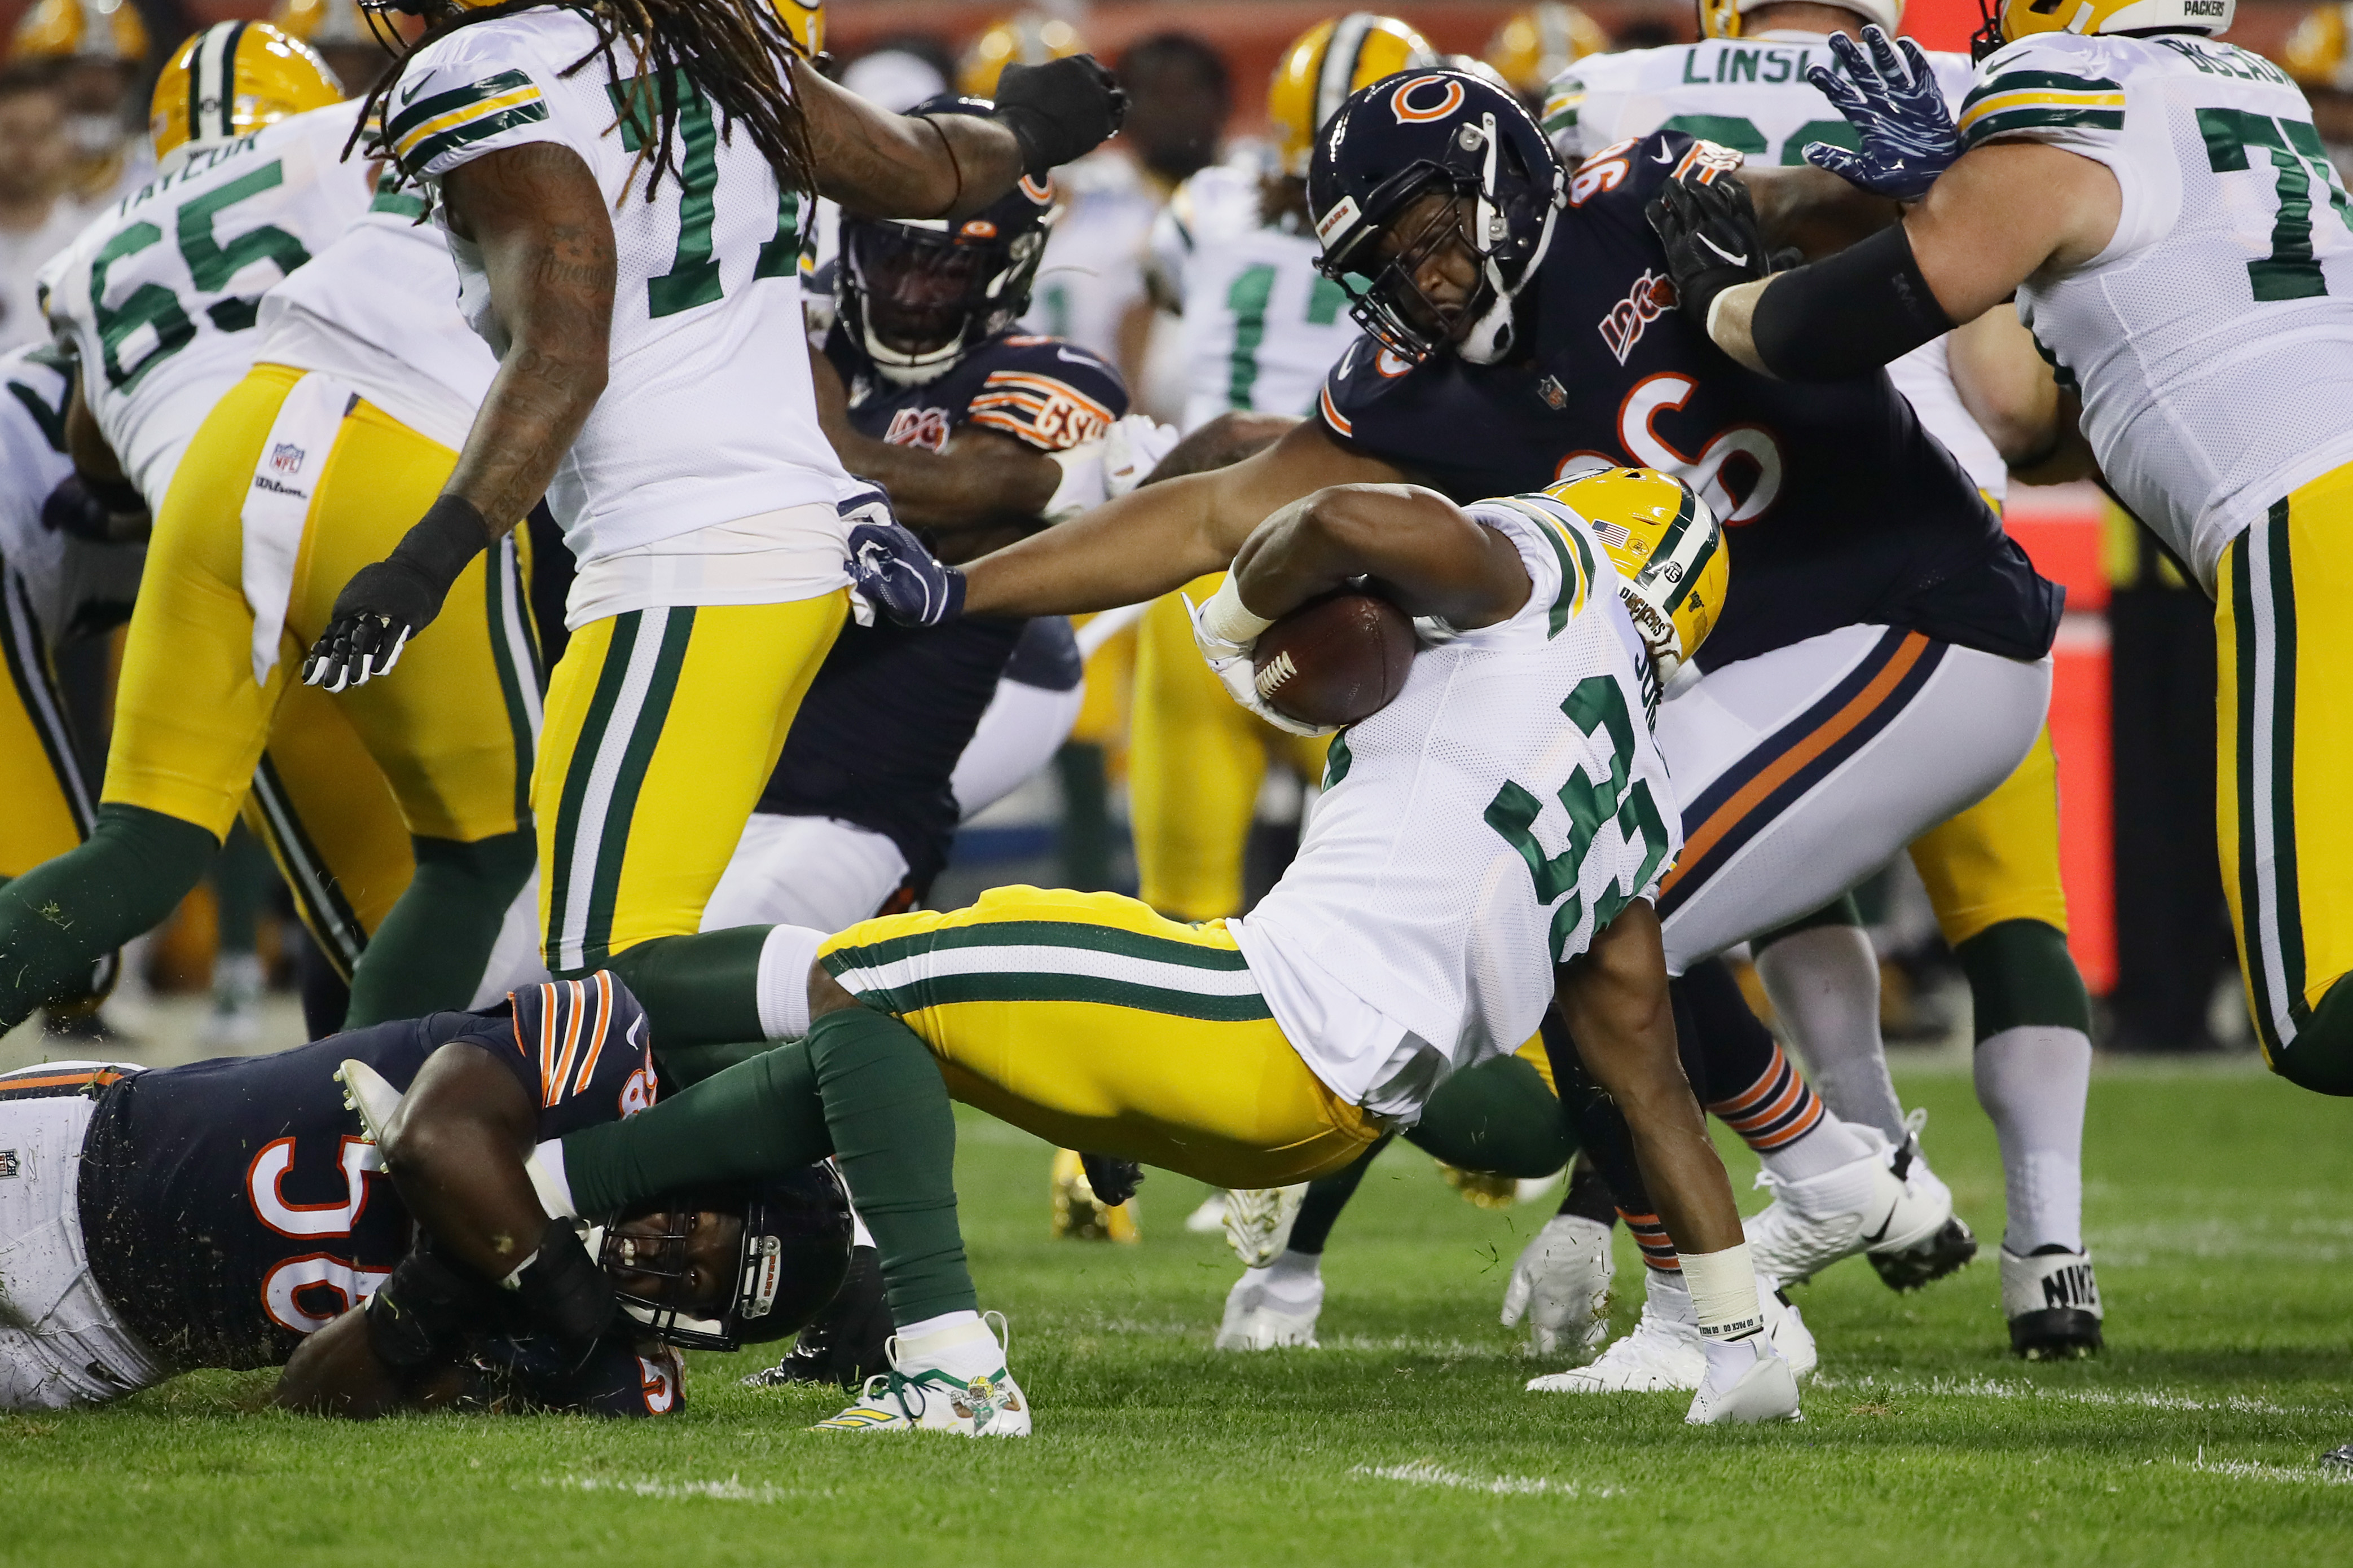 Bears linebacker Roquan Smith (58, tackling Packers running back Aaron Jones in the season opener) had double-digit tackles in four of five games before suffering a season-ending torn pectoral muscle against the Cowboys last Thursday night.